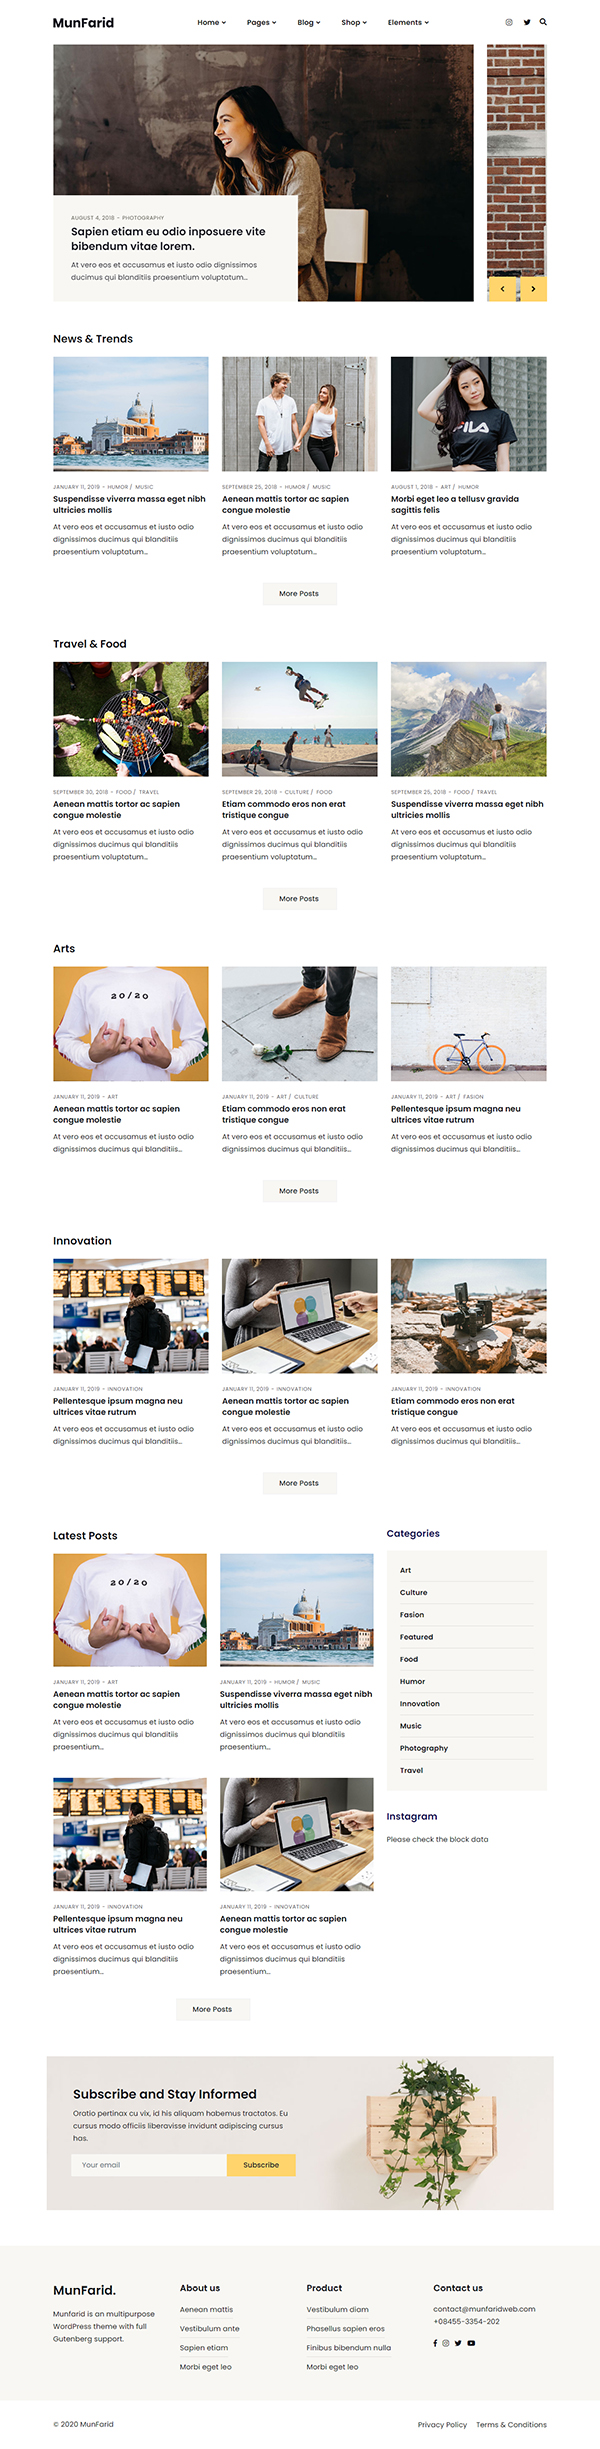 Munfarid - A WordPress Theme For Blog & Shop